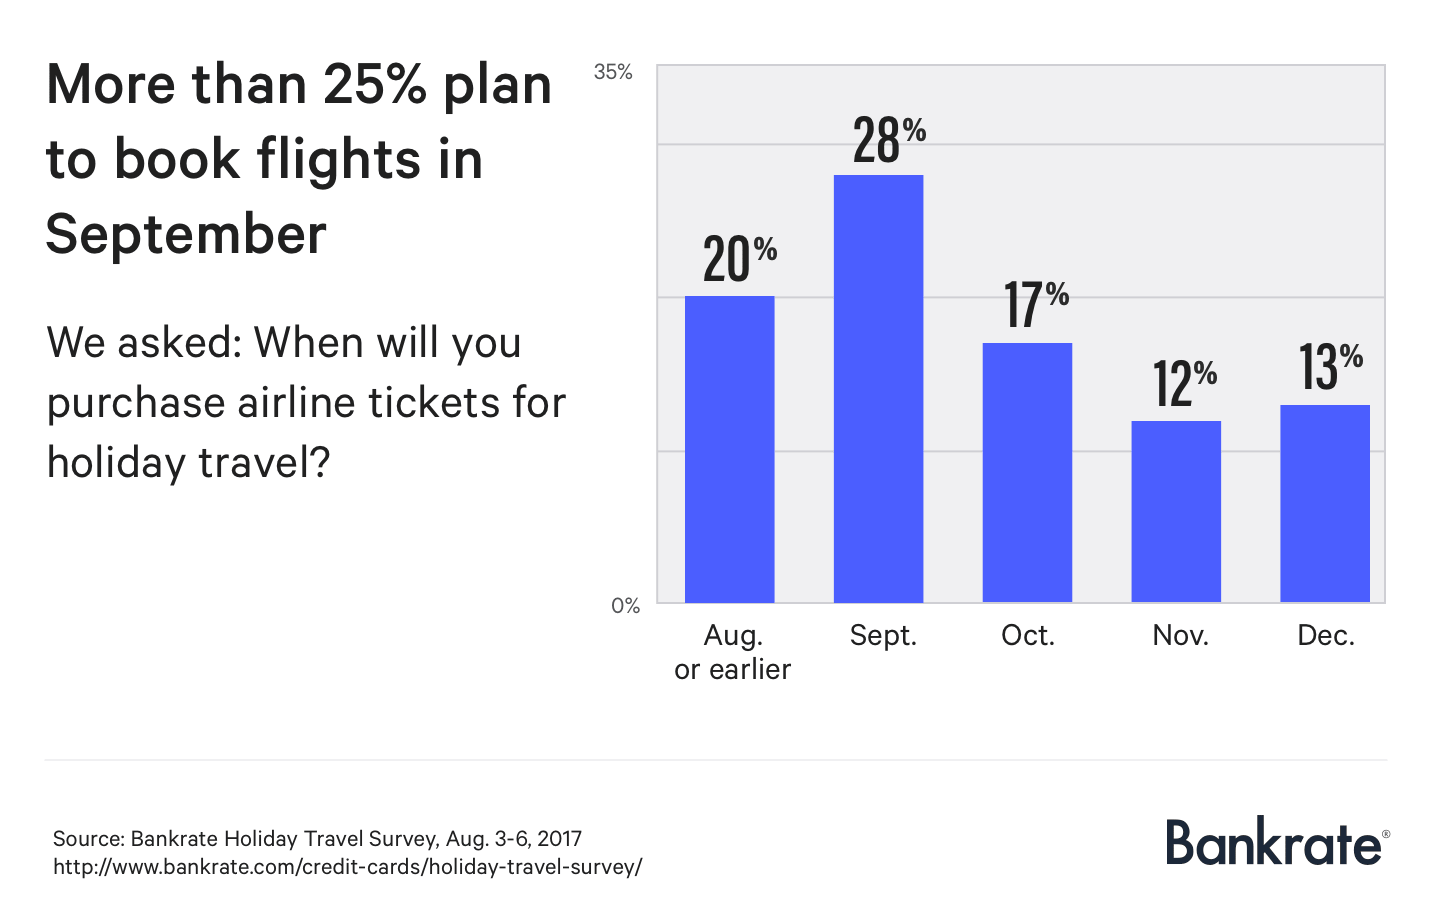 More than 25% plan to book flights this month